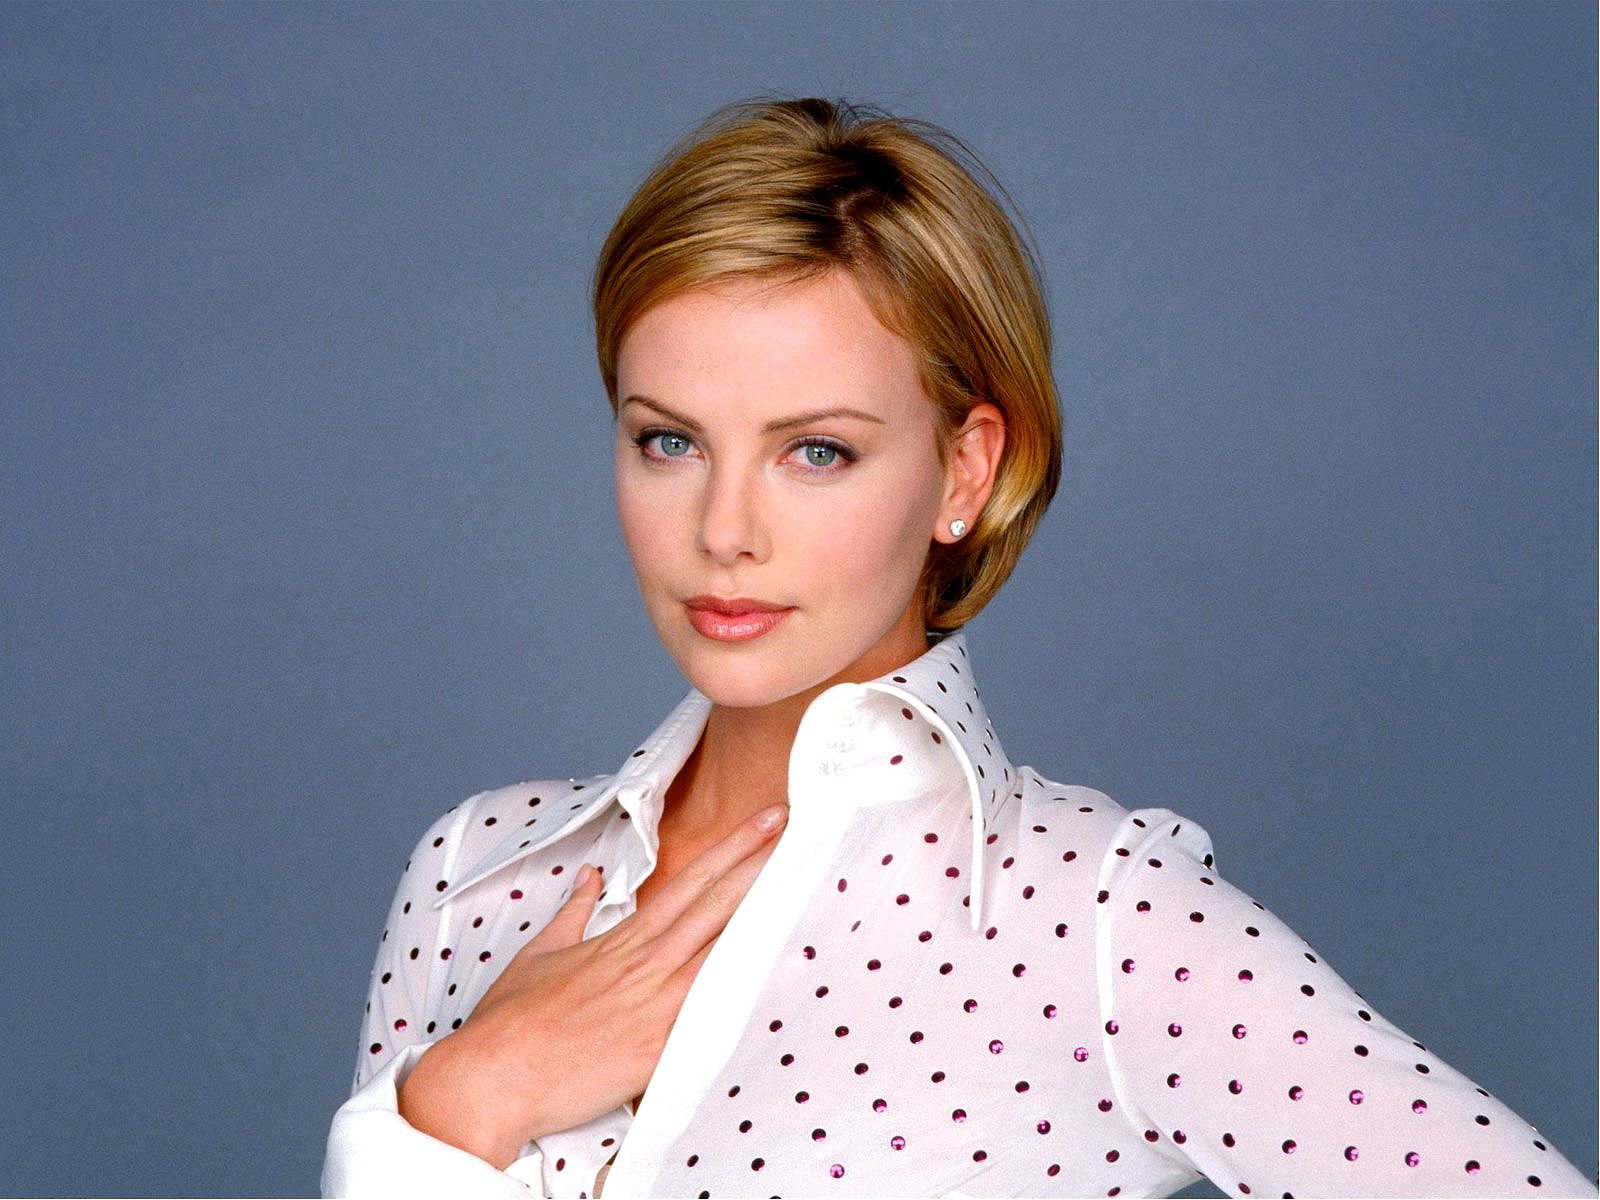 charlize theron movies ~ Crazy, funny and celebrities pictures Charlize Theron Movies